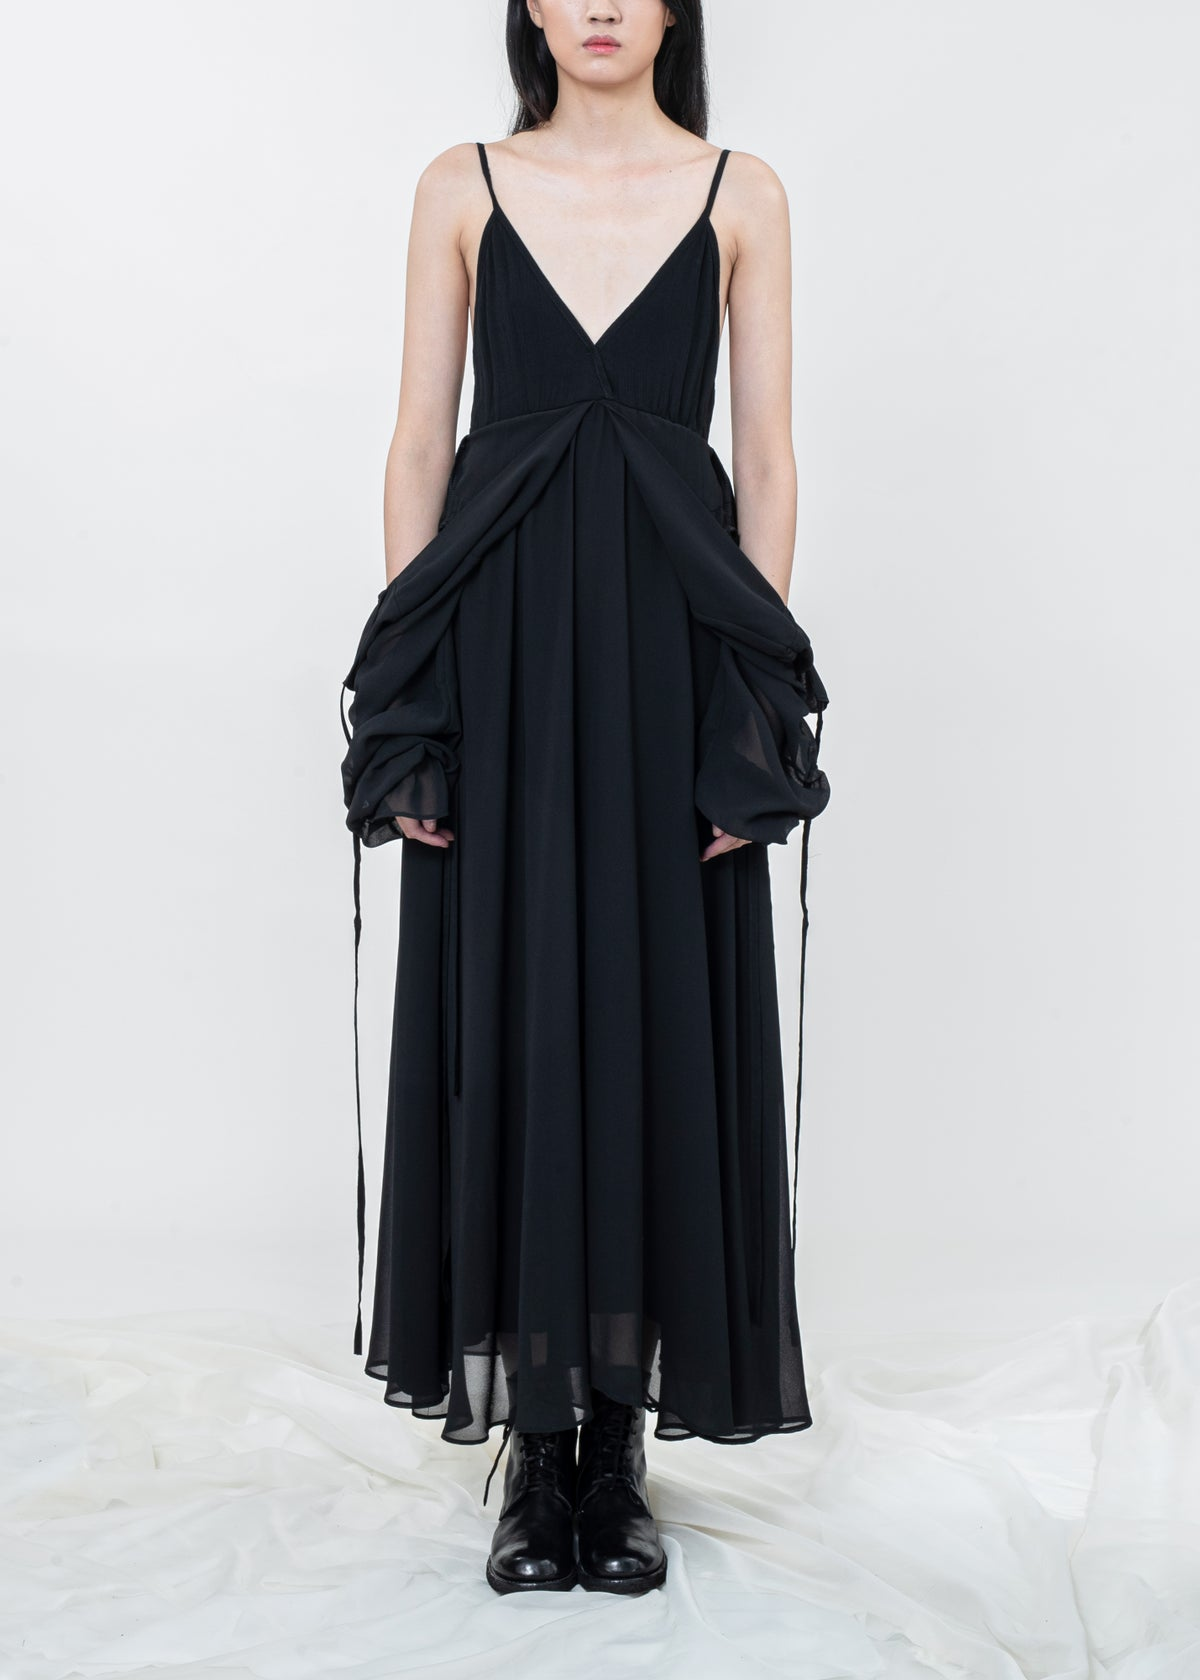 Image of Two Way Layered Sleeves Ruth Dress